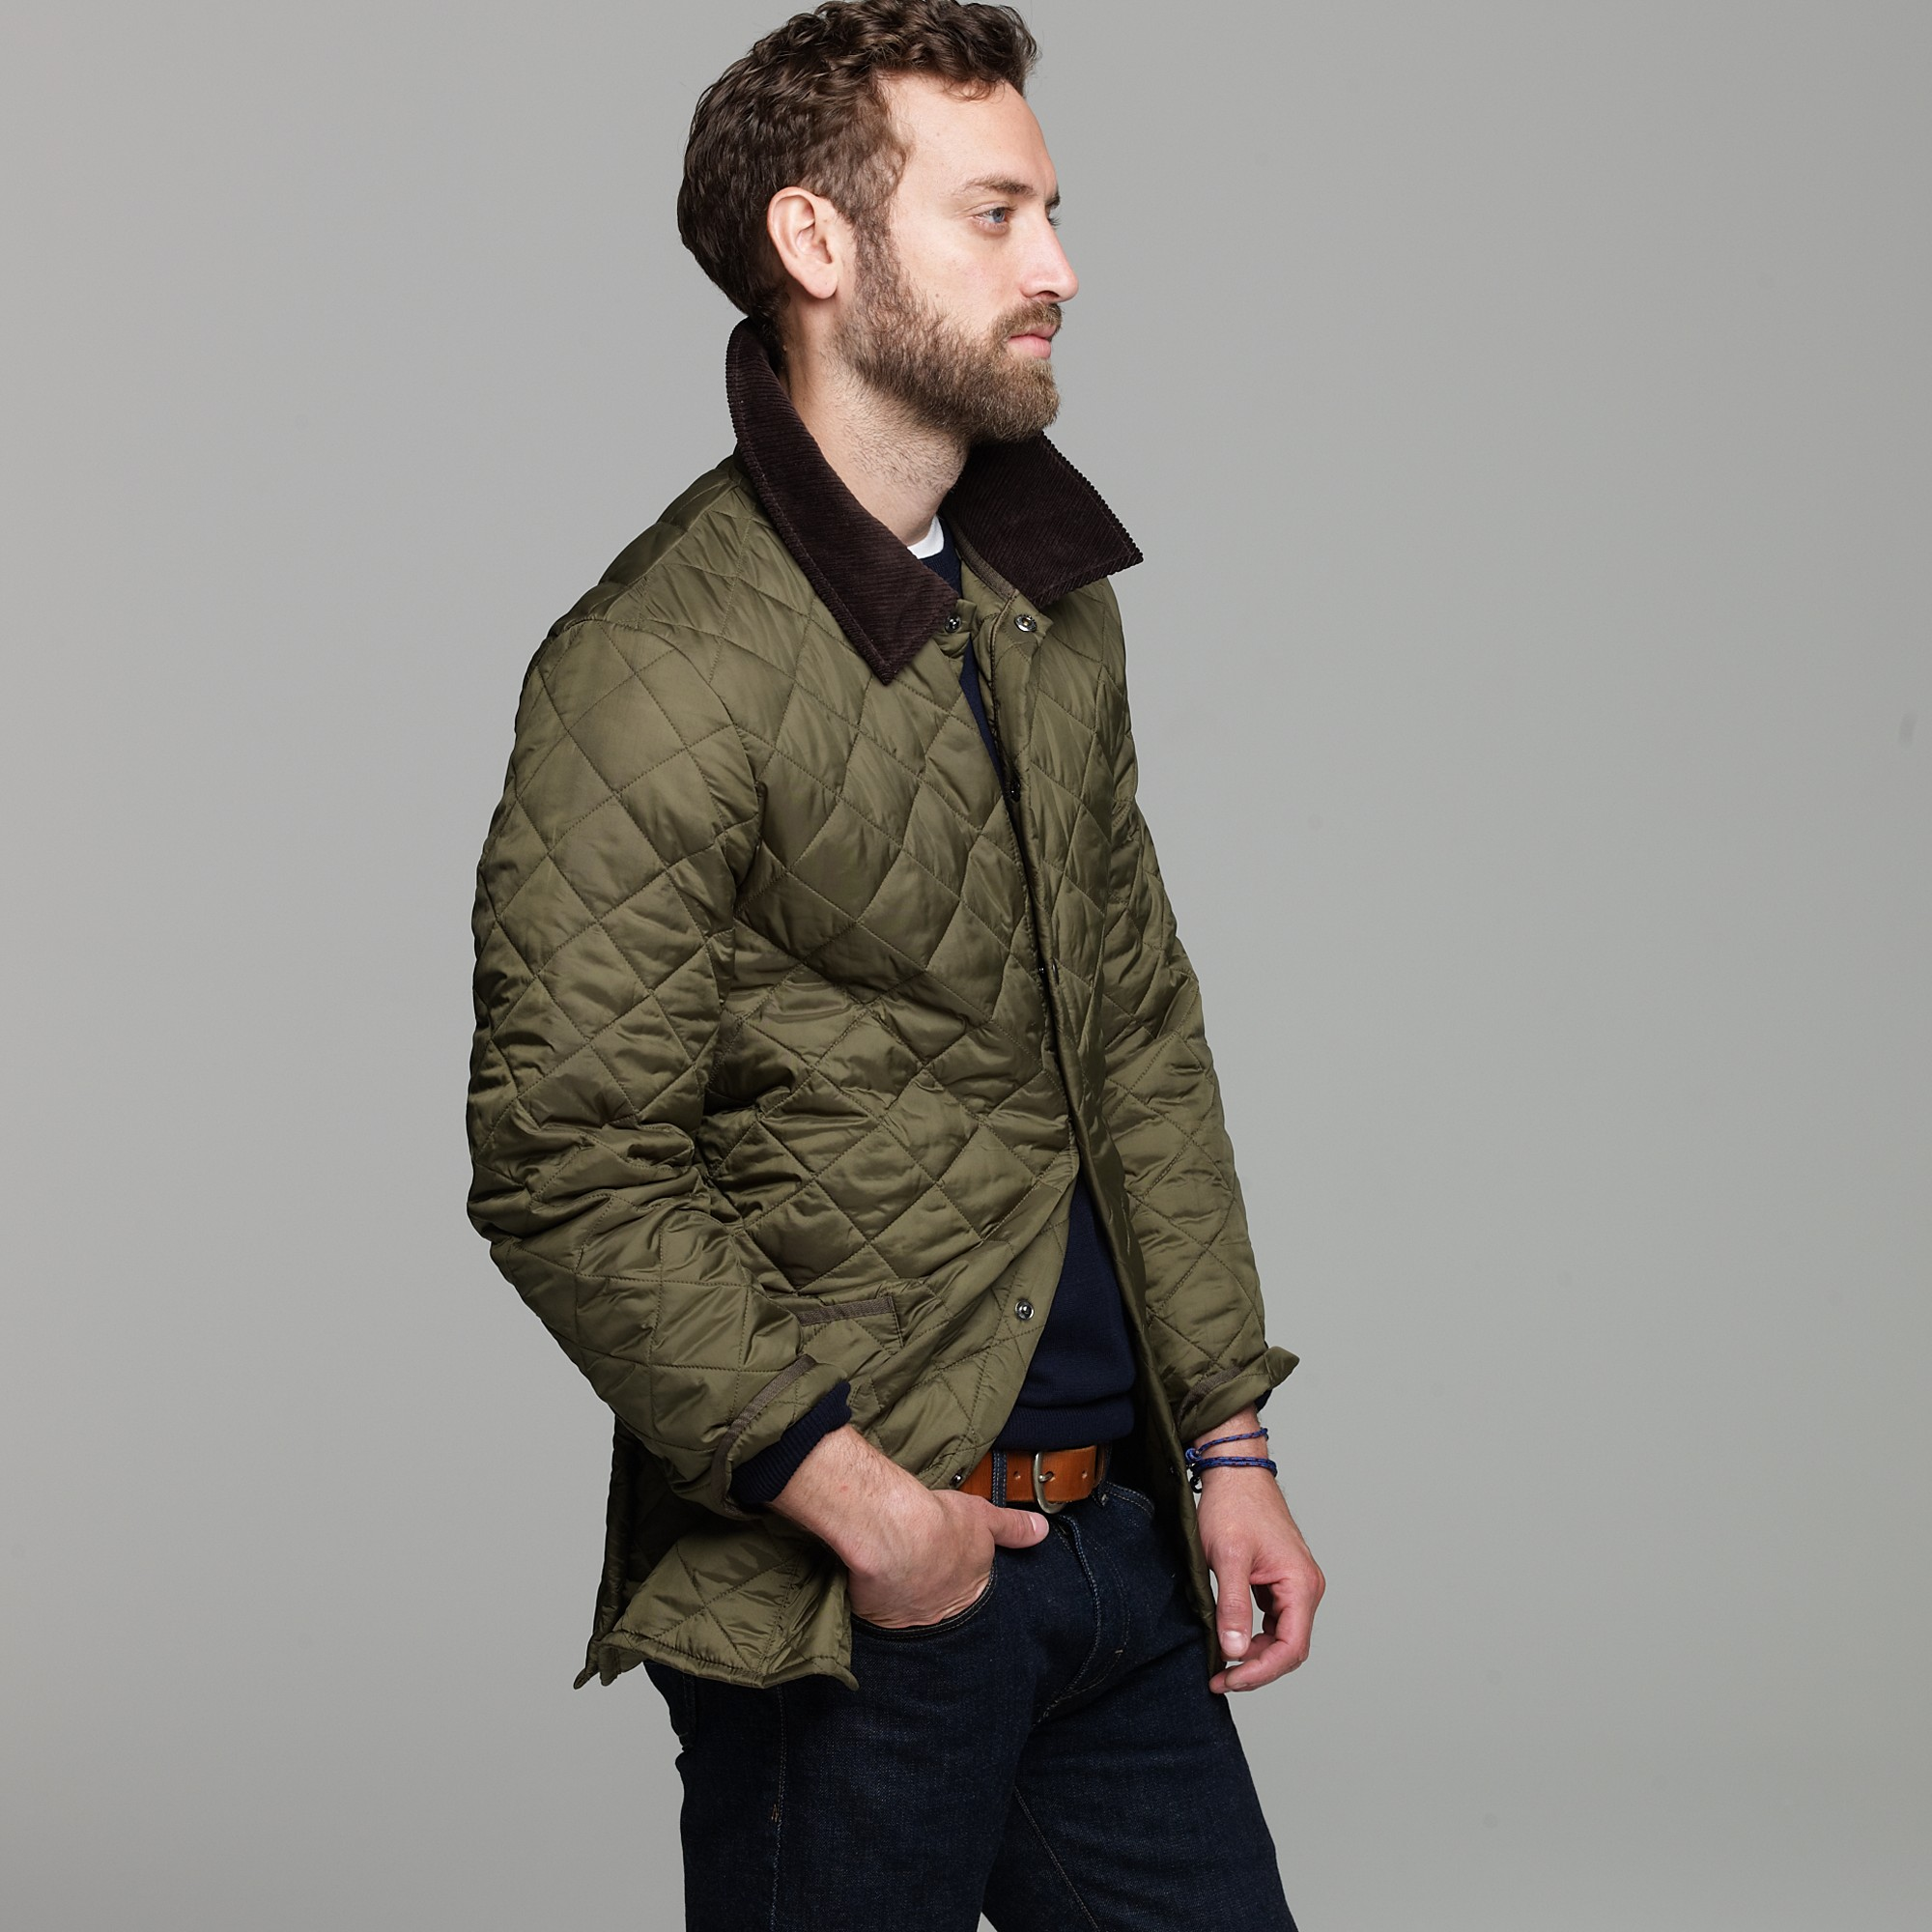 f245bc17c45ea Barbour Heritage Liddesdale Quilted Jacket Green chantalflorist.co.uk